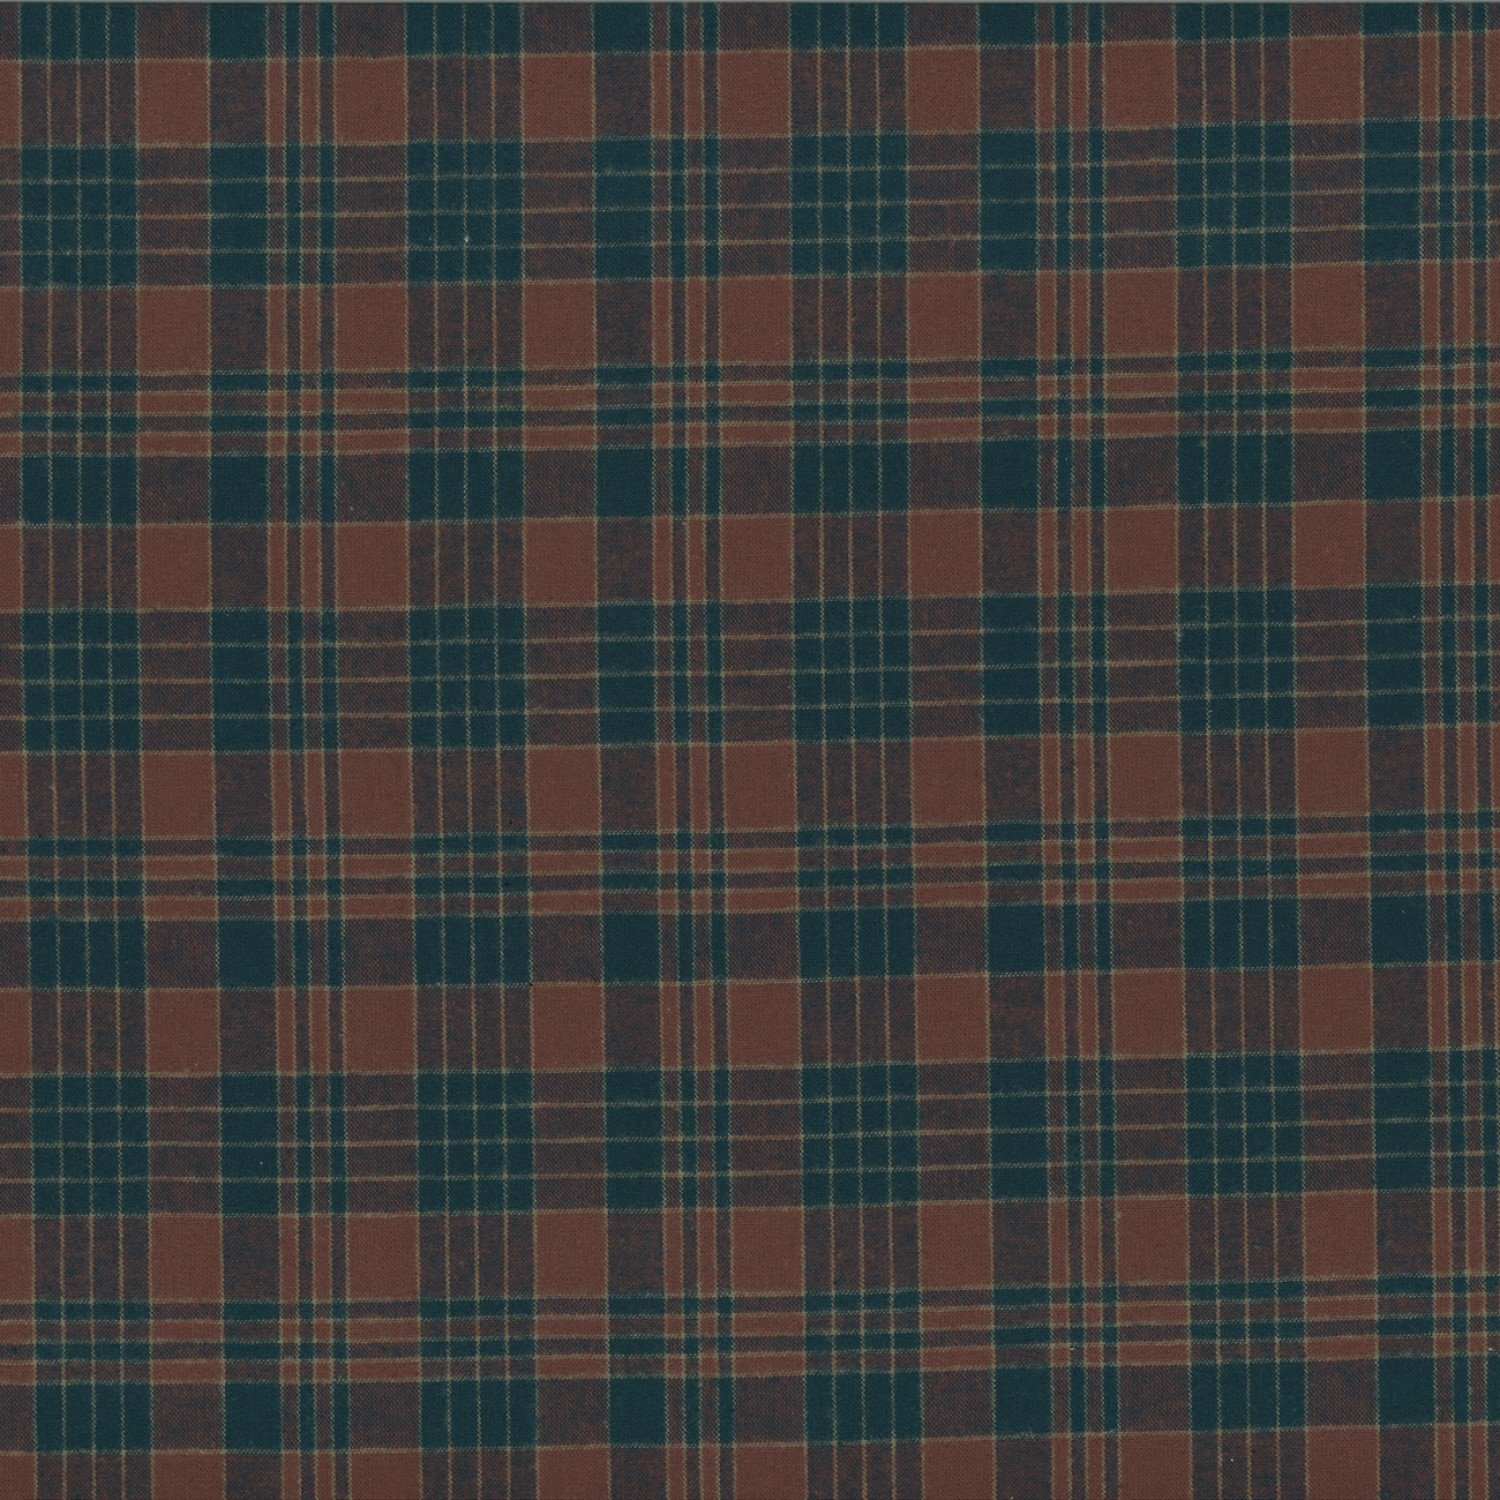 Centenary Collection - Brushed Cotton Plaid Navy/Burgandy